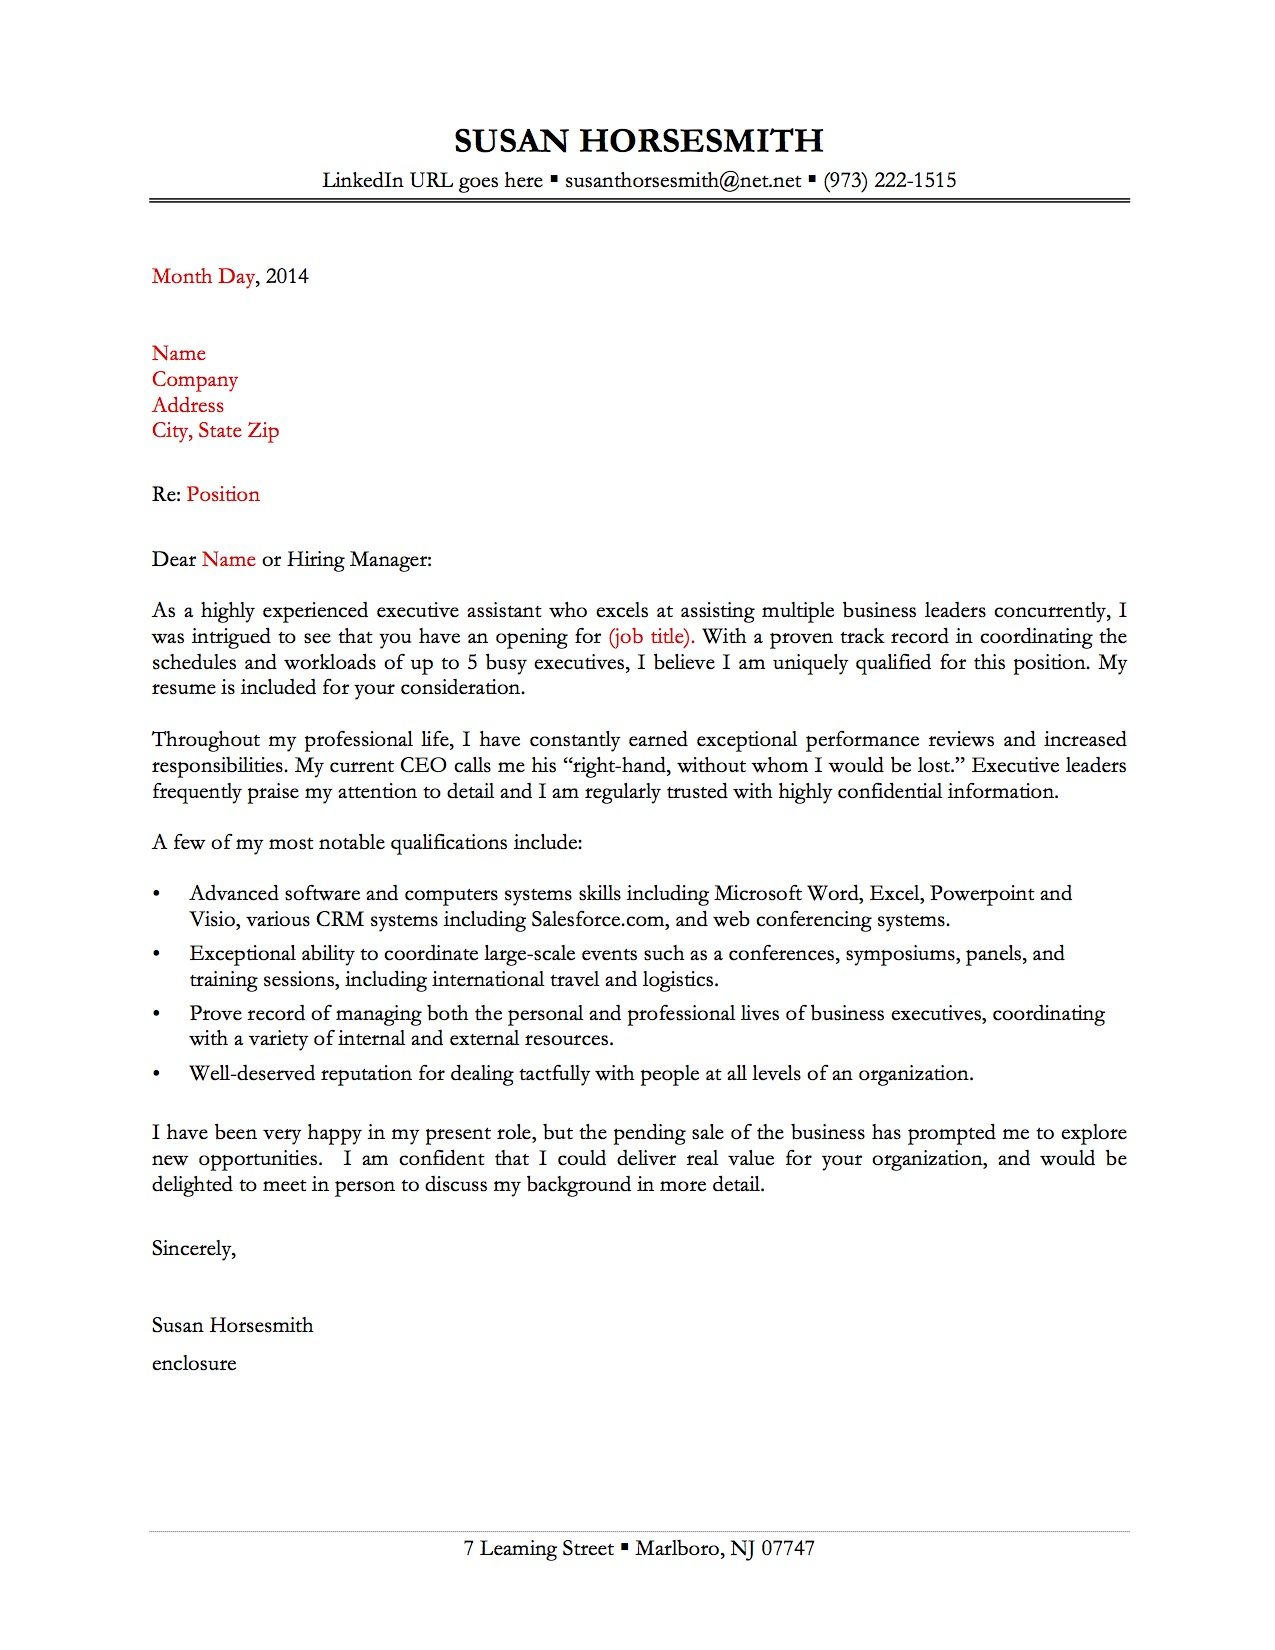 cover letter example for teachers assistant